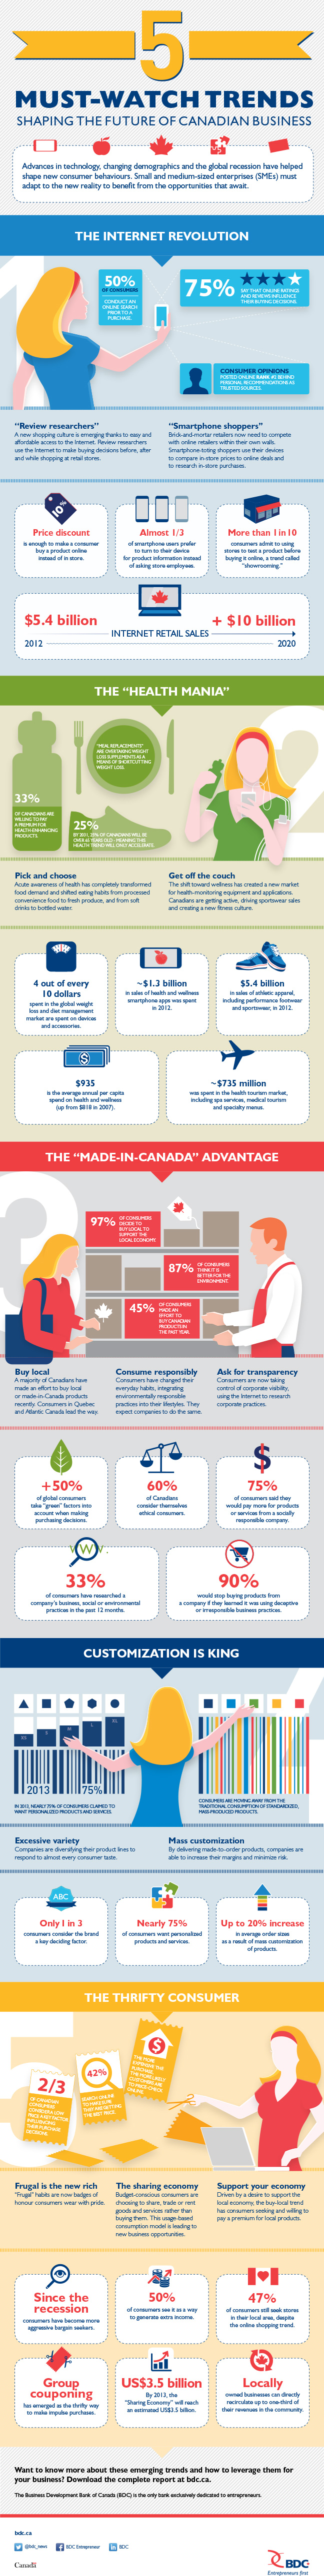 5 must-watch trends shaping the future of canadian business